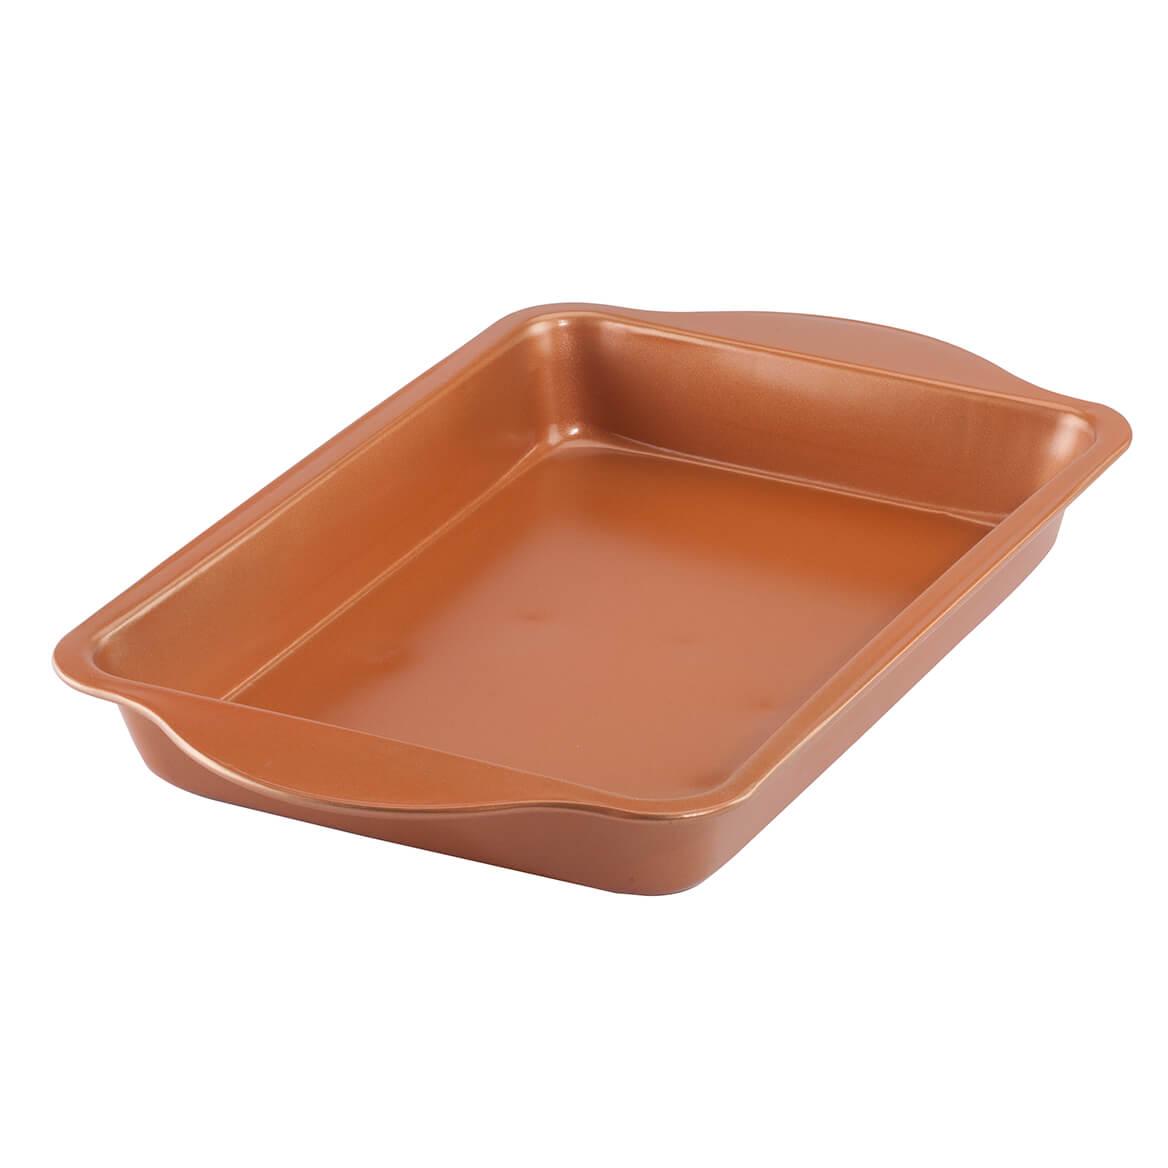 Ceramic Copper Baking Pan